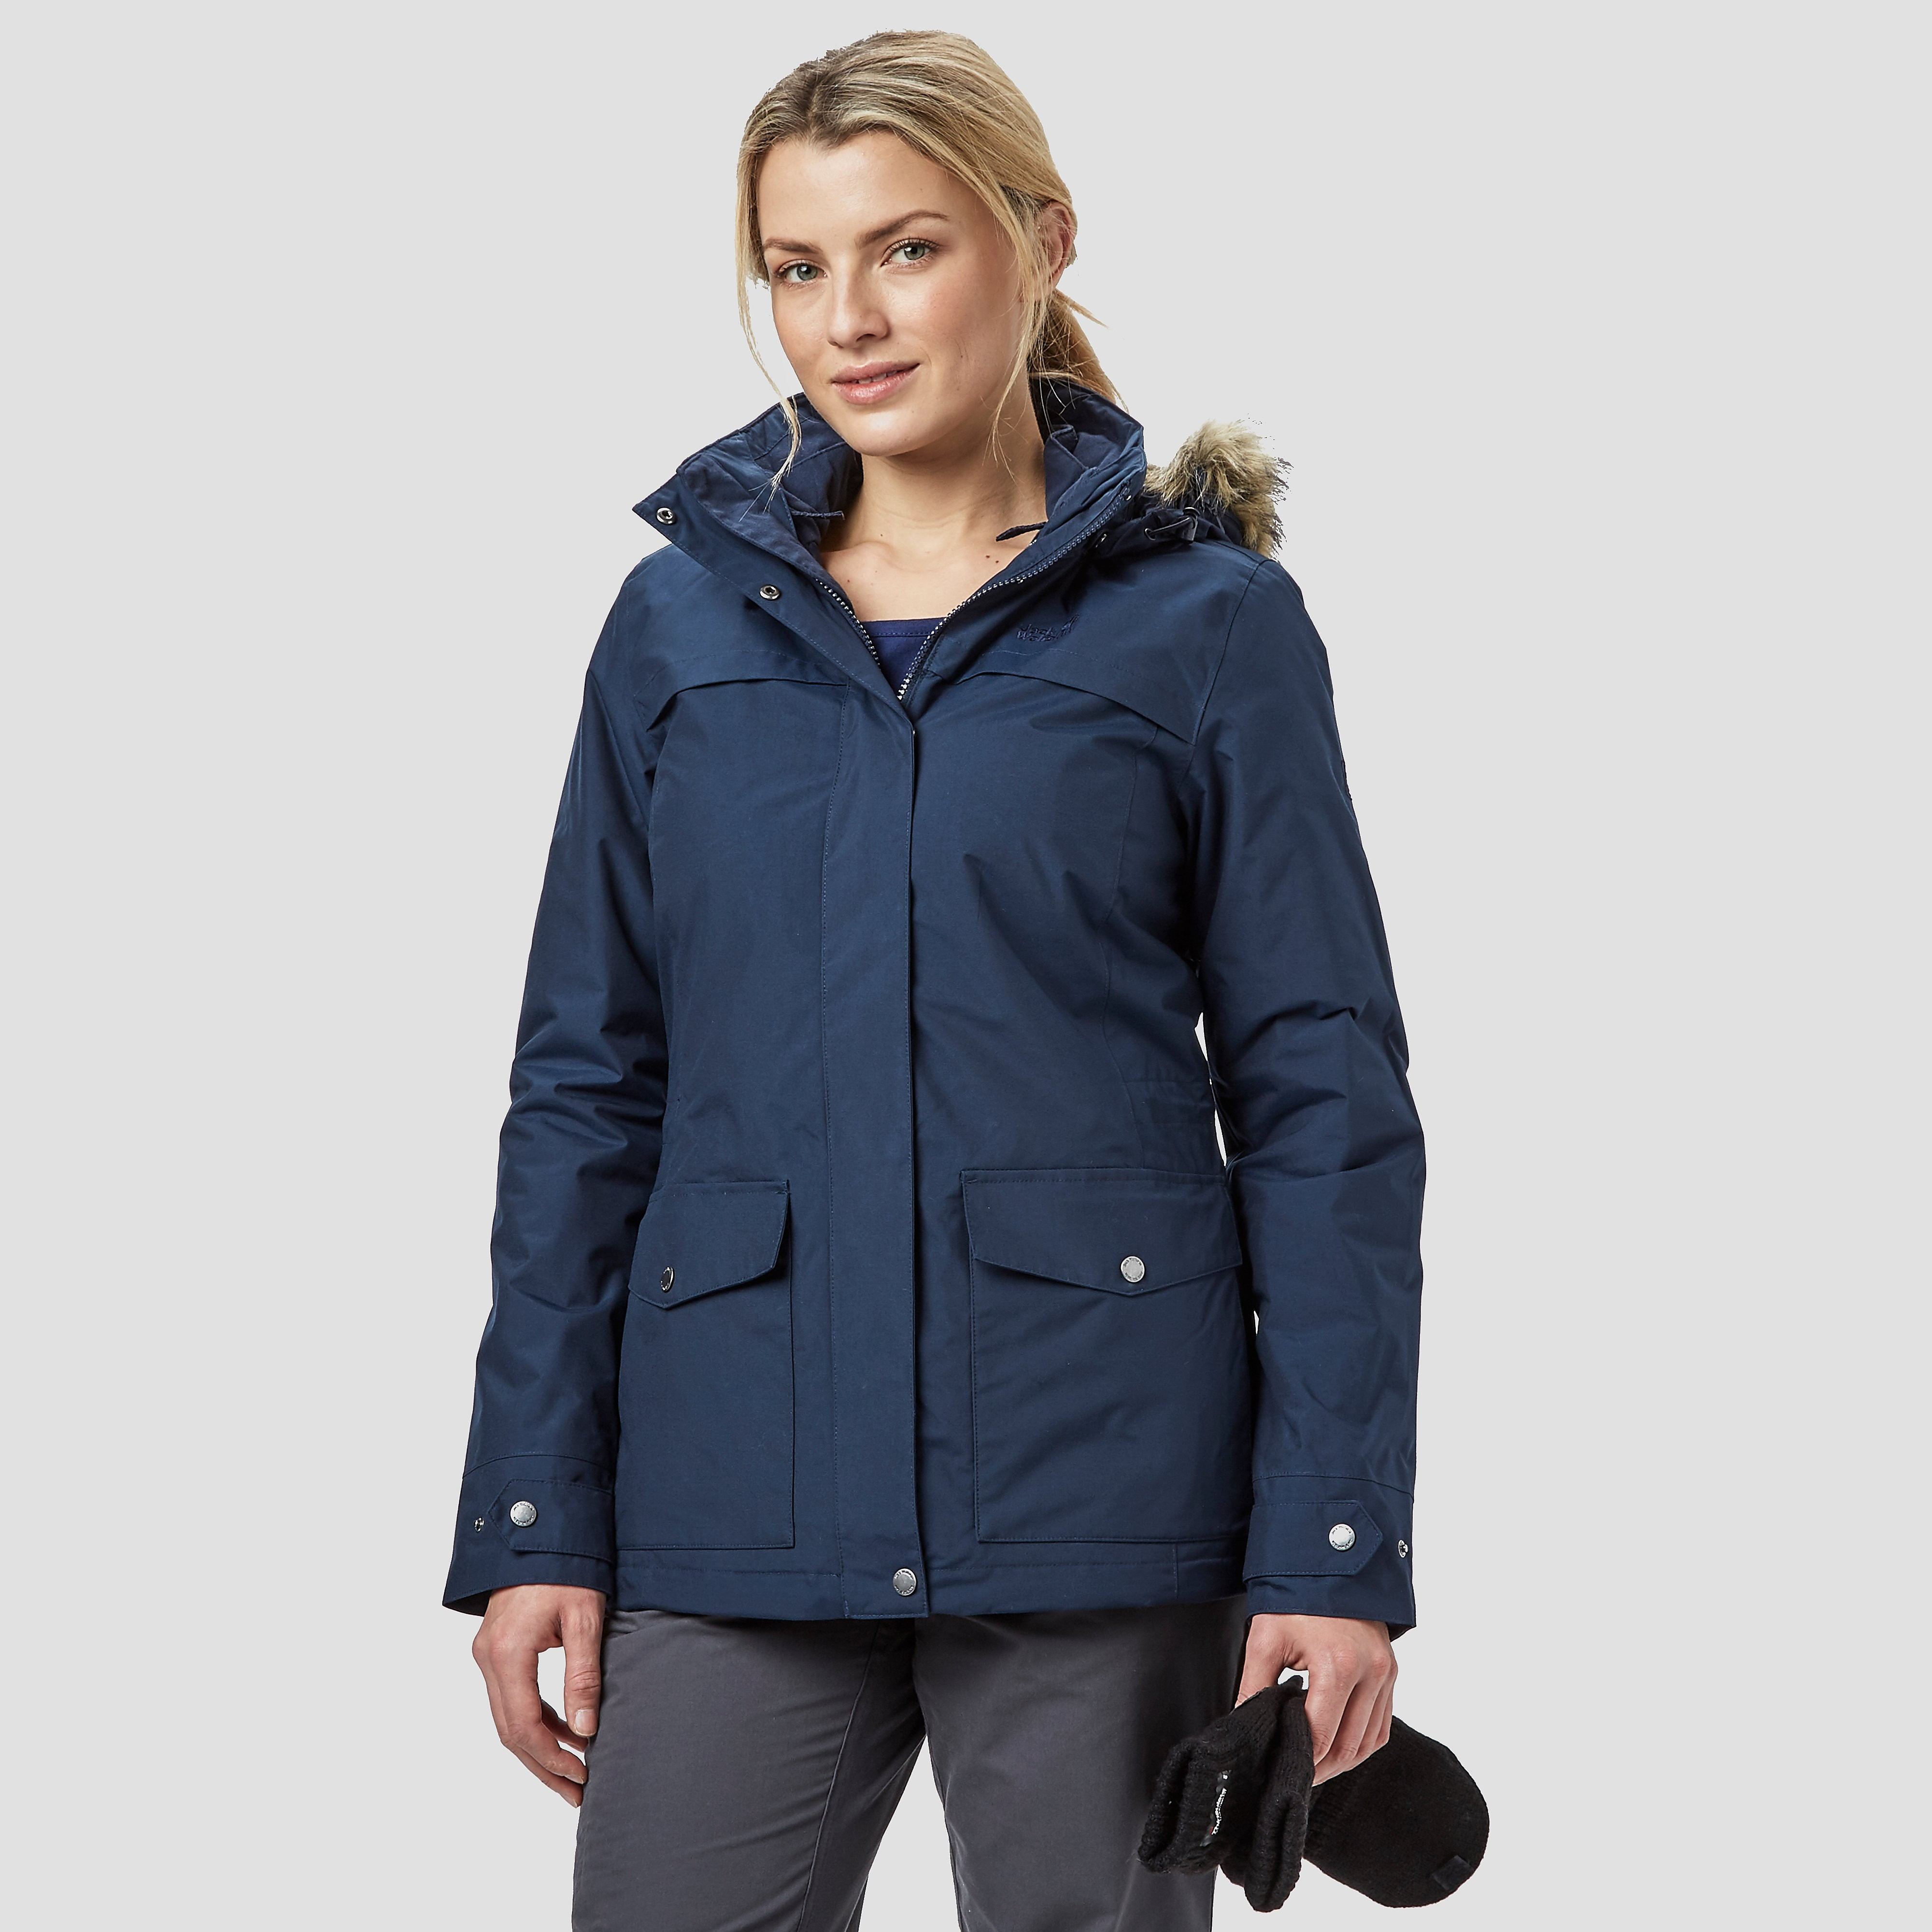 Jack Wolfskin Rocky Shore 3-in-1 Women's Parka